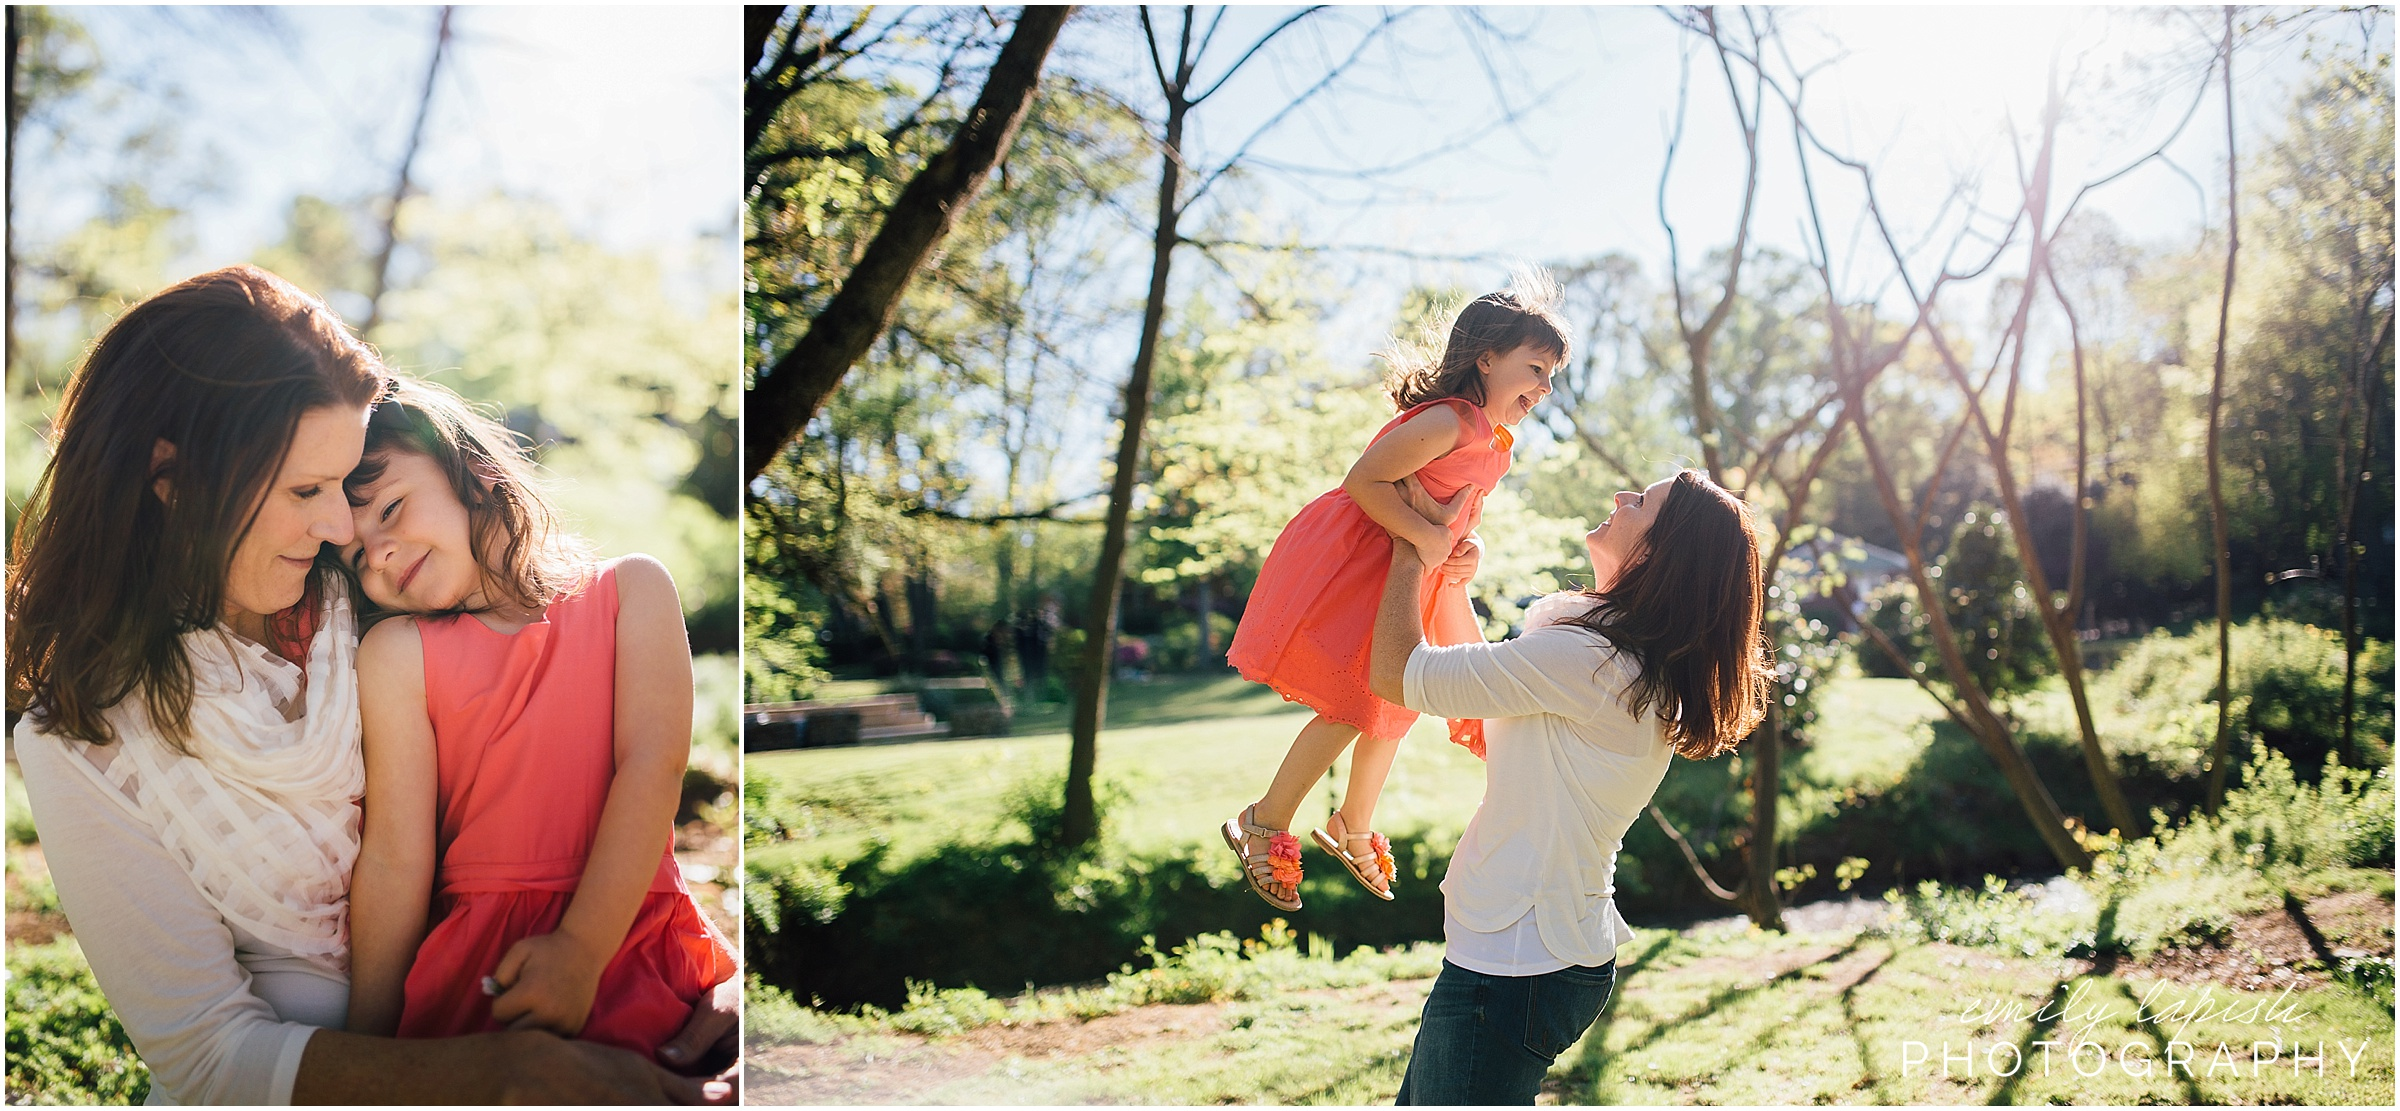 lifestyle family photography by Emily Lapish Photography in Chattanooga TN_0032